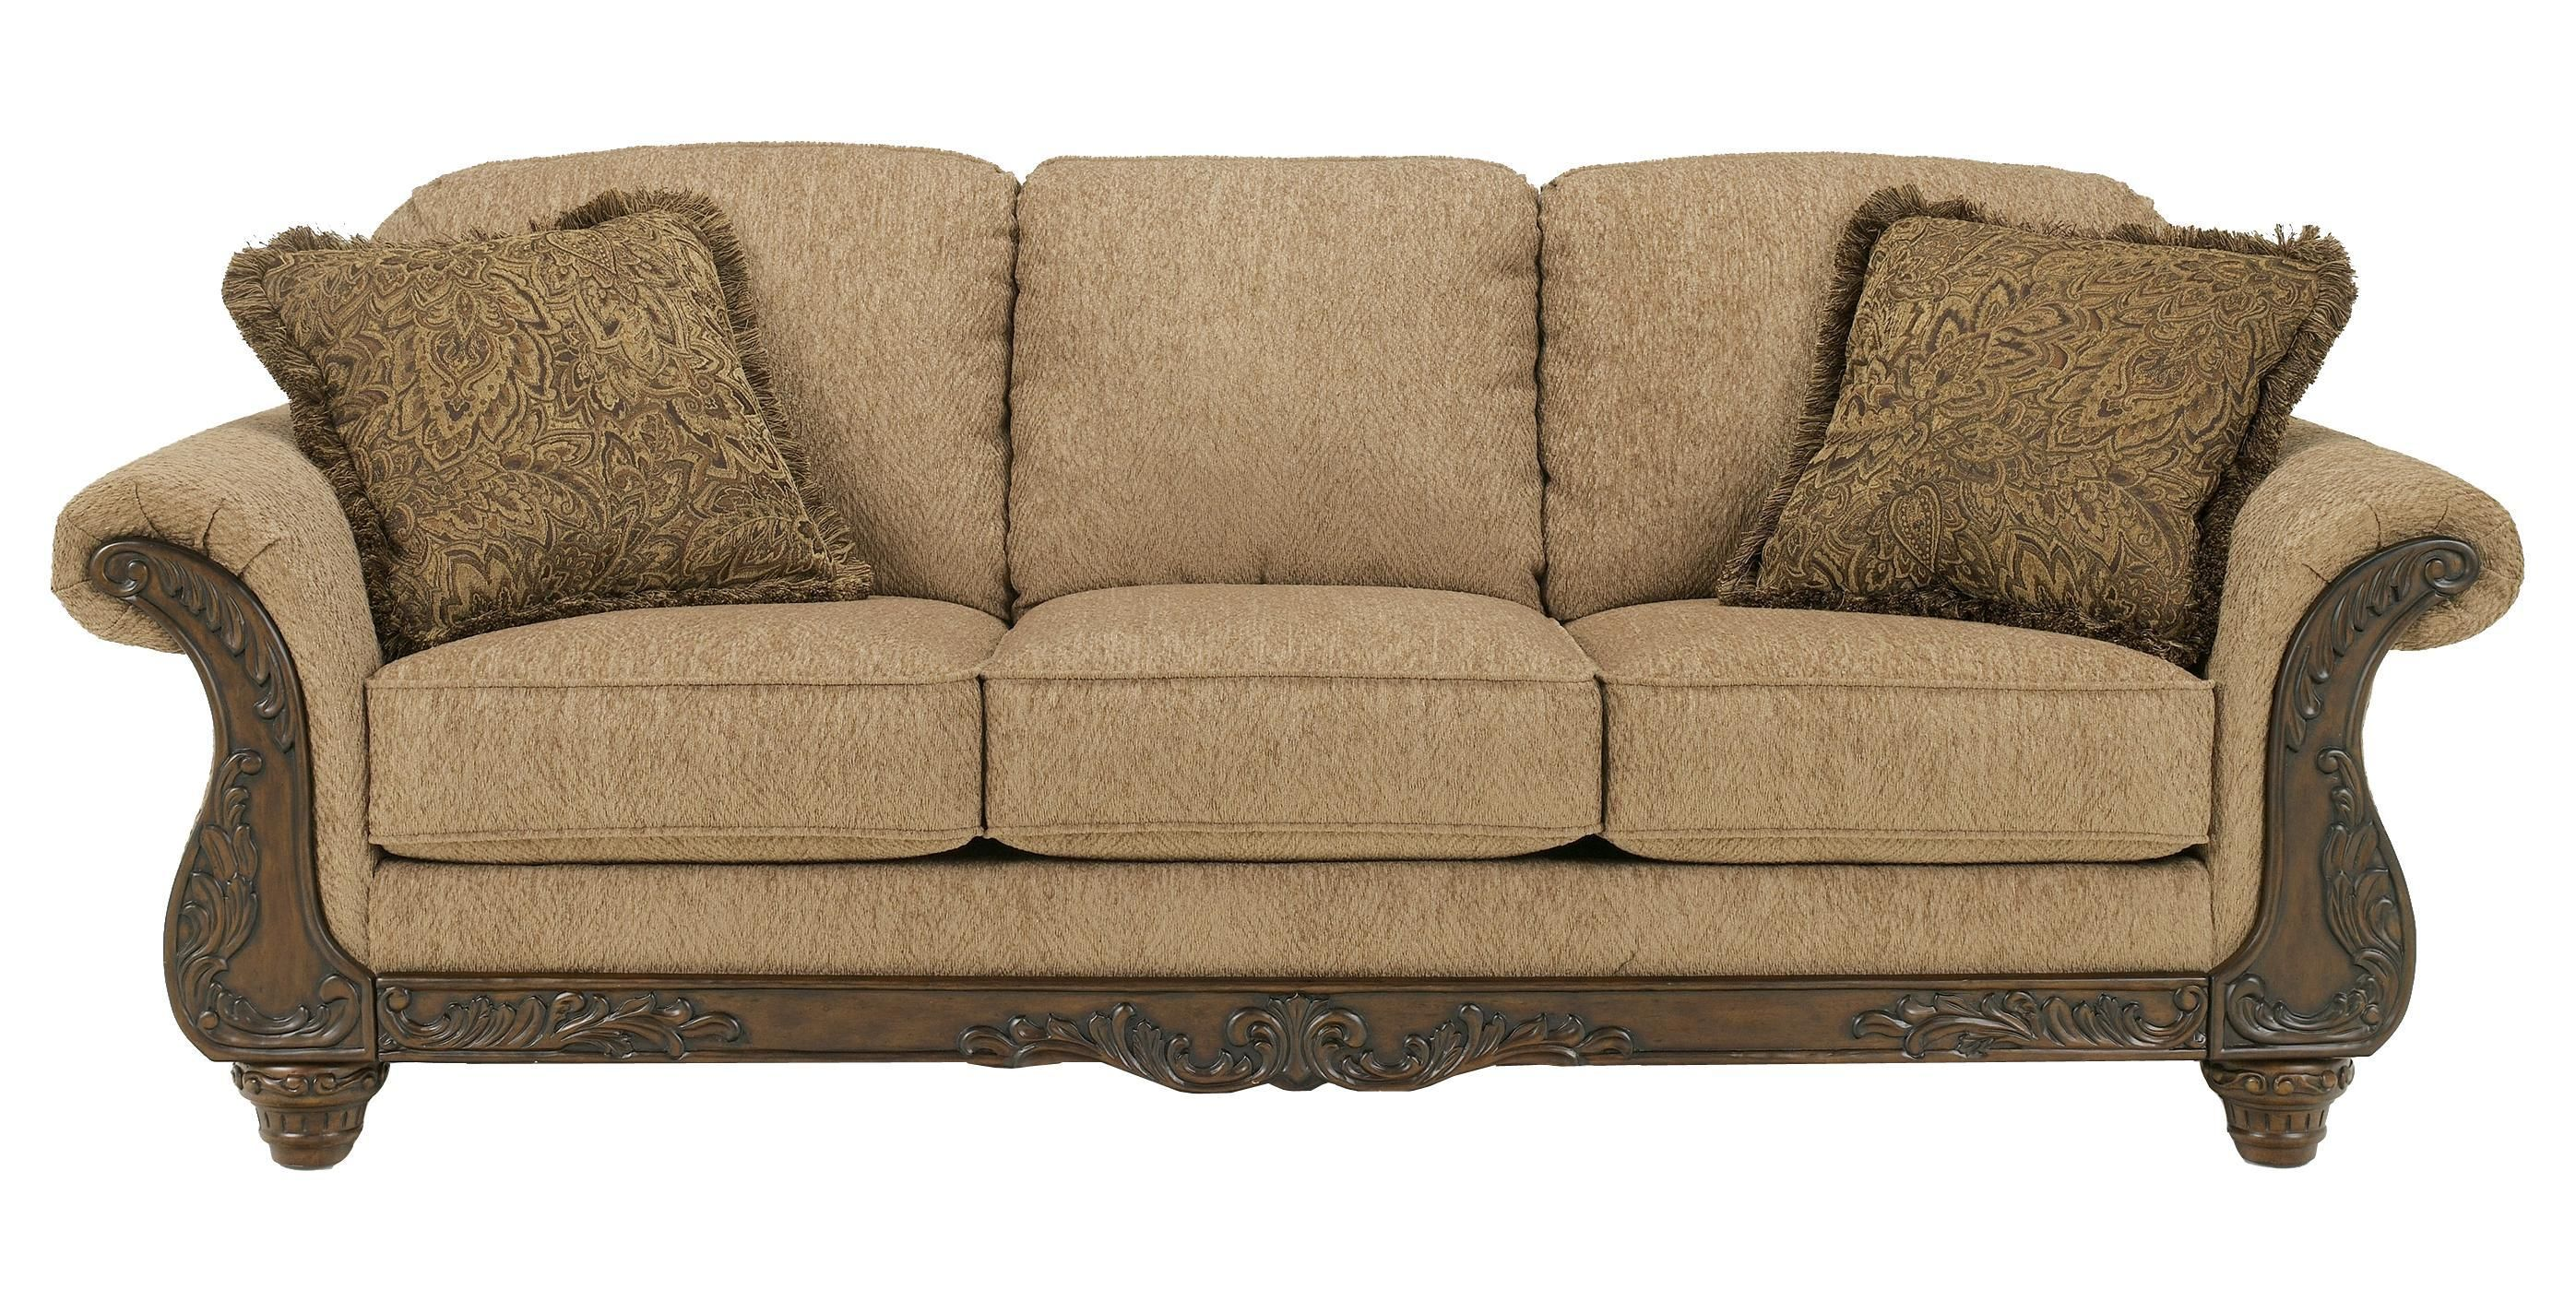 Cambridge Amber Sofa by Signature Design by Ashley Furniture